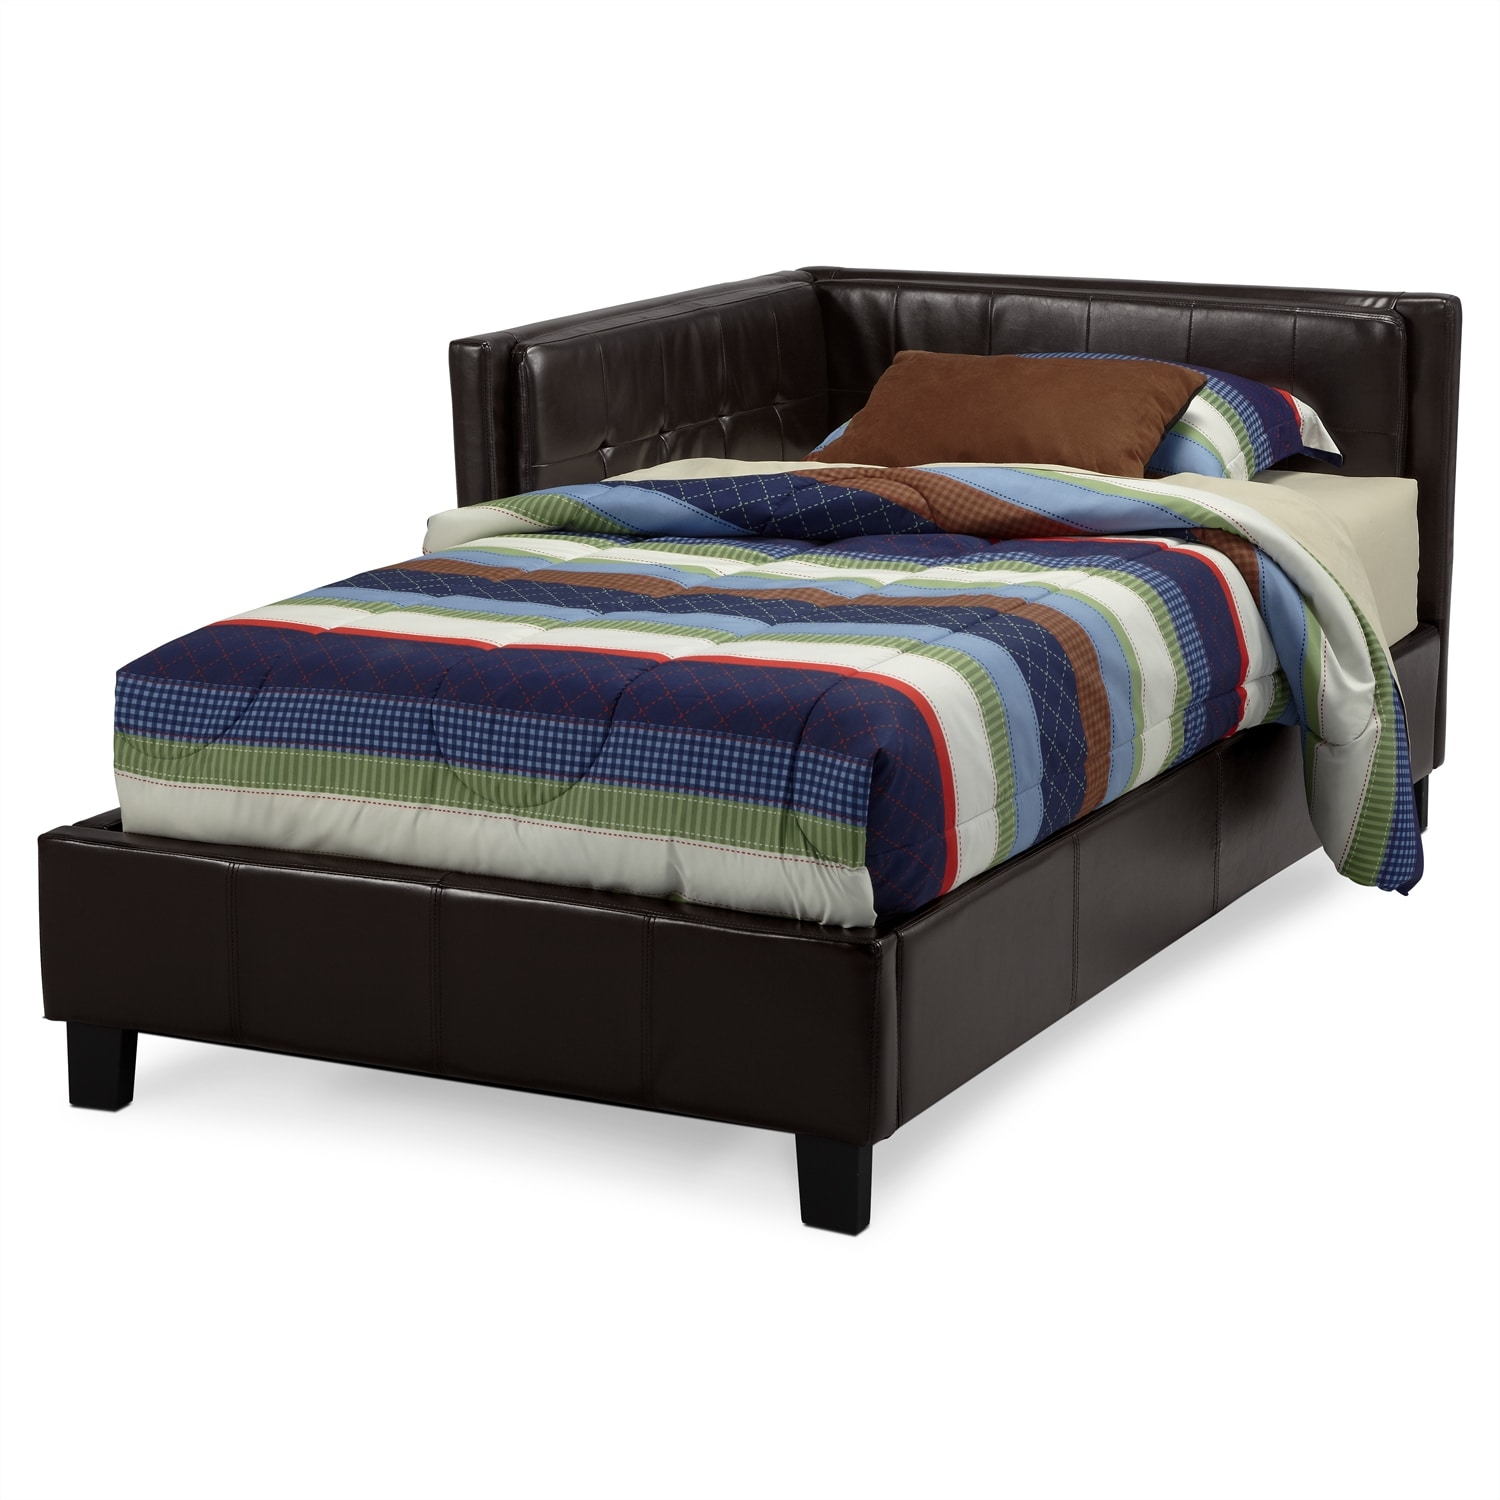 Full corner bed 28 images jordan ii full corner bed for 92879 bedroom furniture